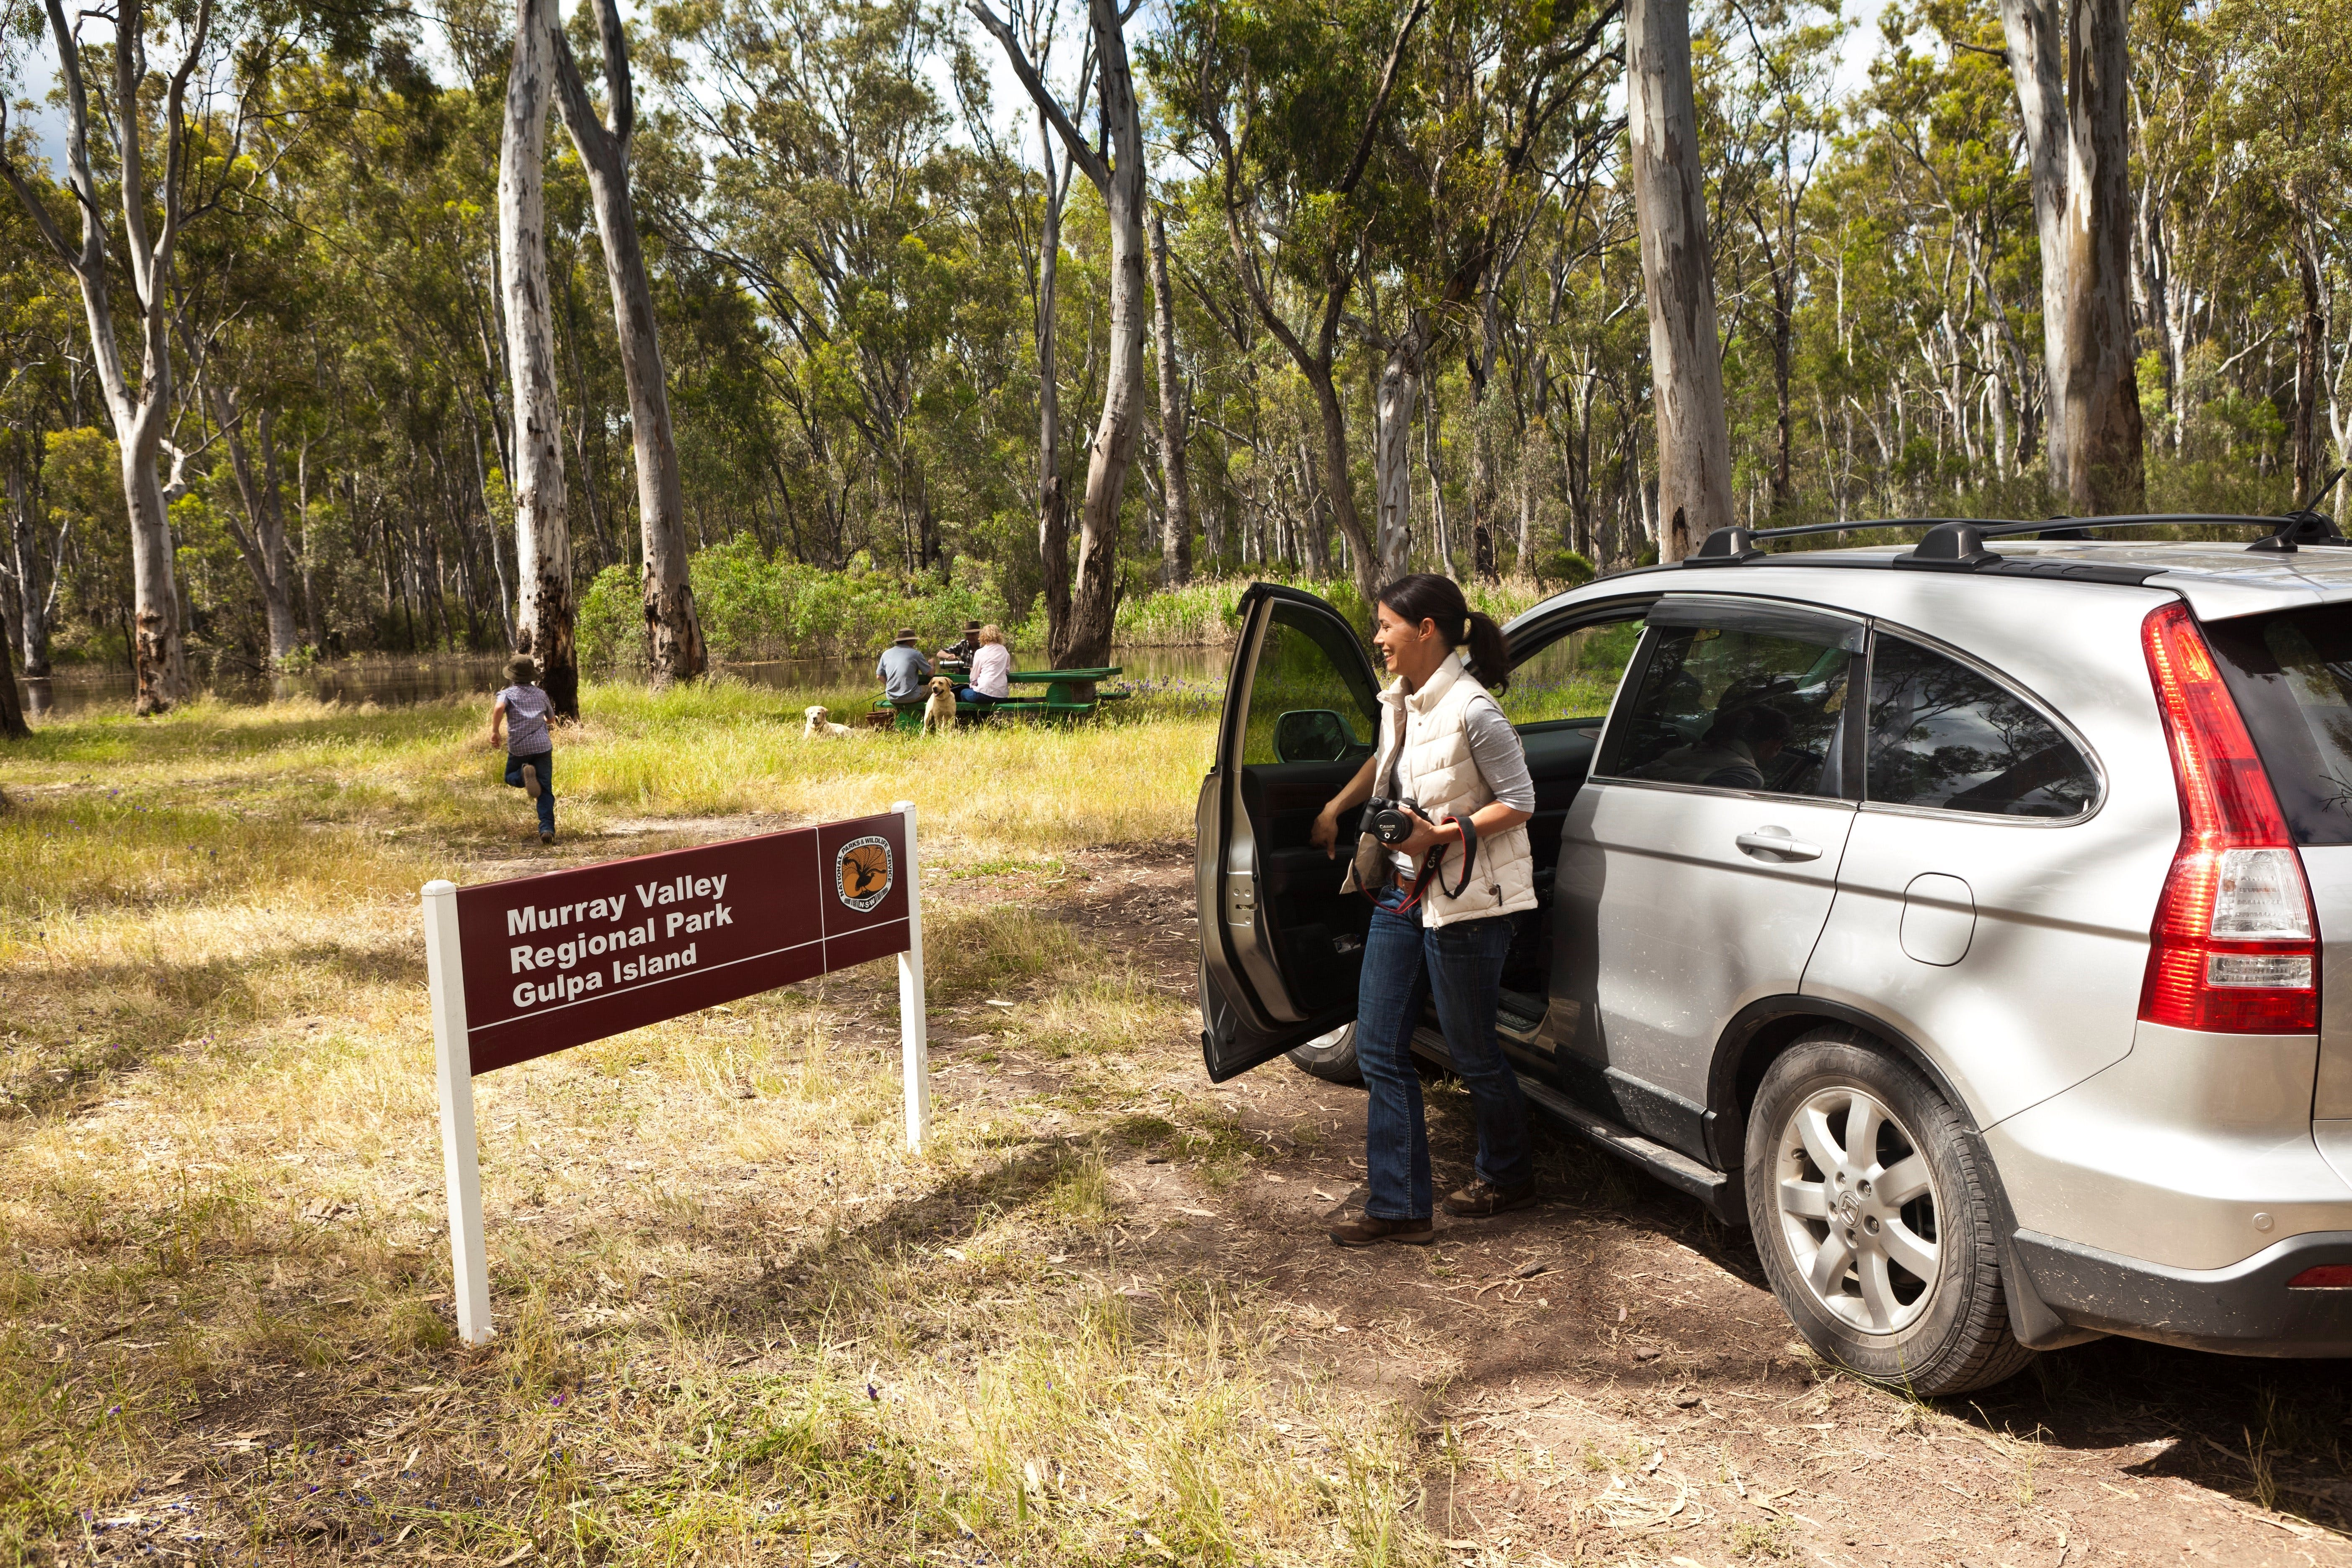 Murray Valley Regional Park - WA Accommodation